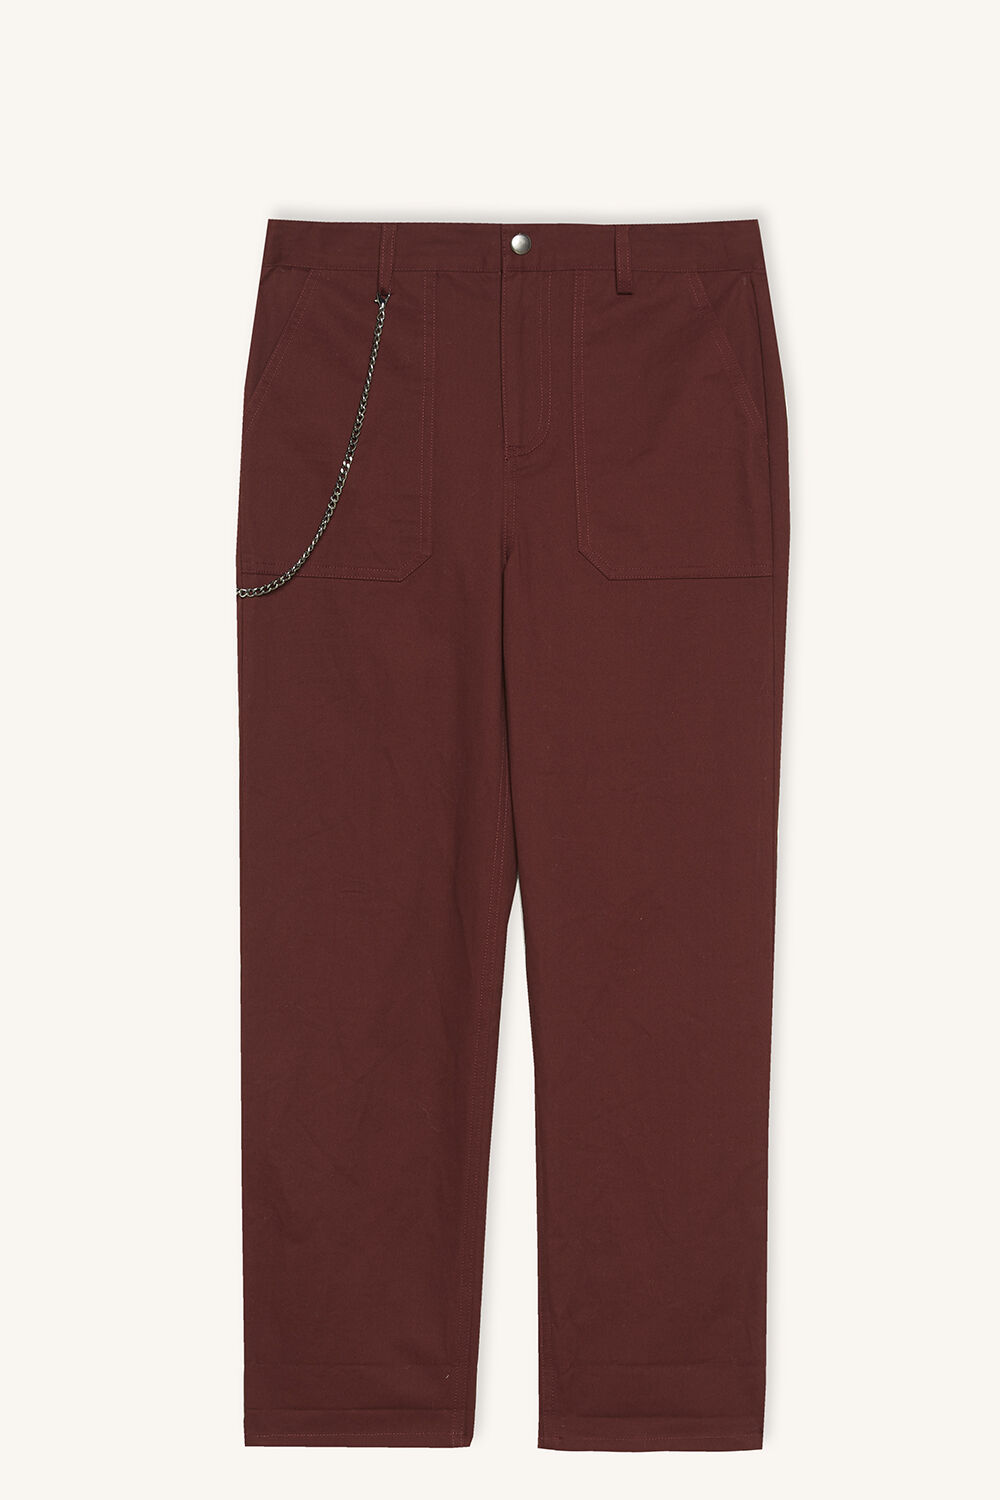 junior boy key chain chino pant in colour PORT ROYALE